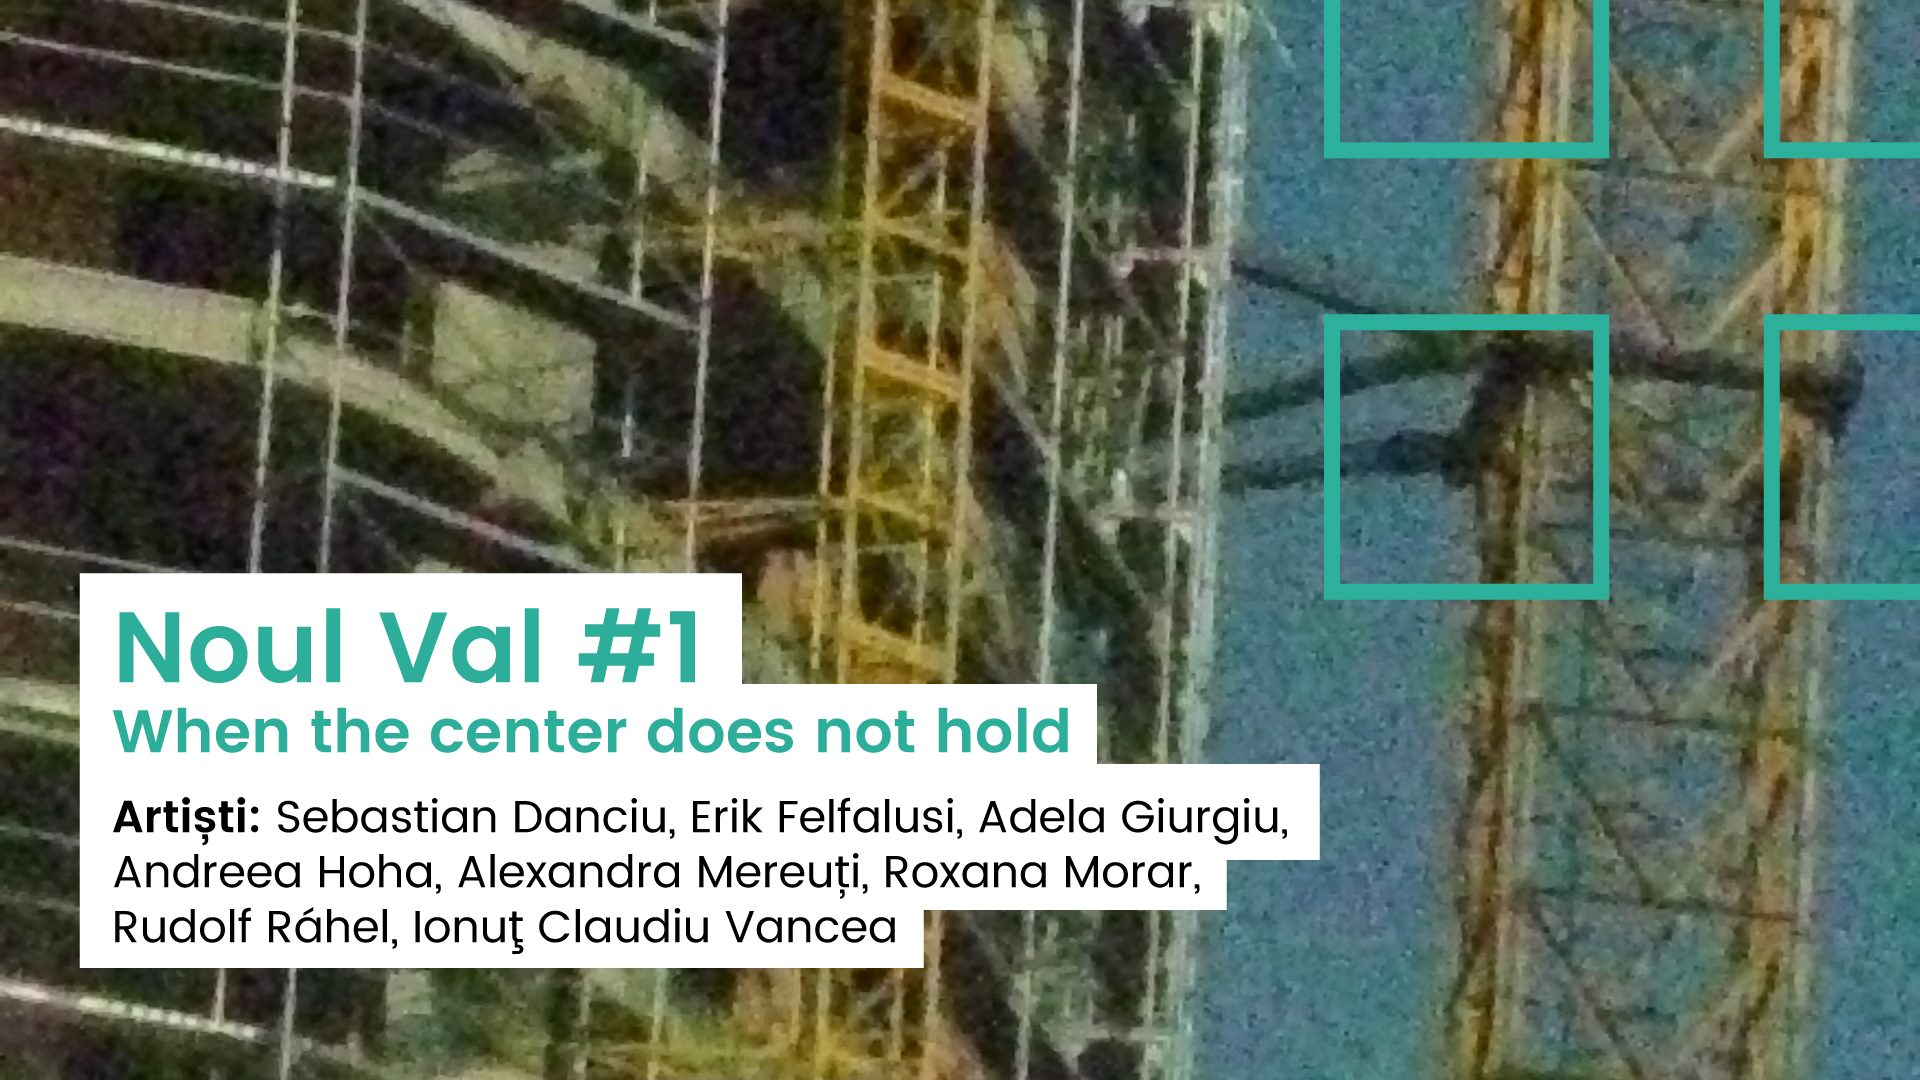 Vernisaj: Noul Val #1 When the center does not hold